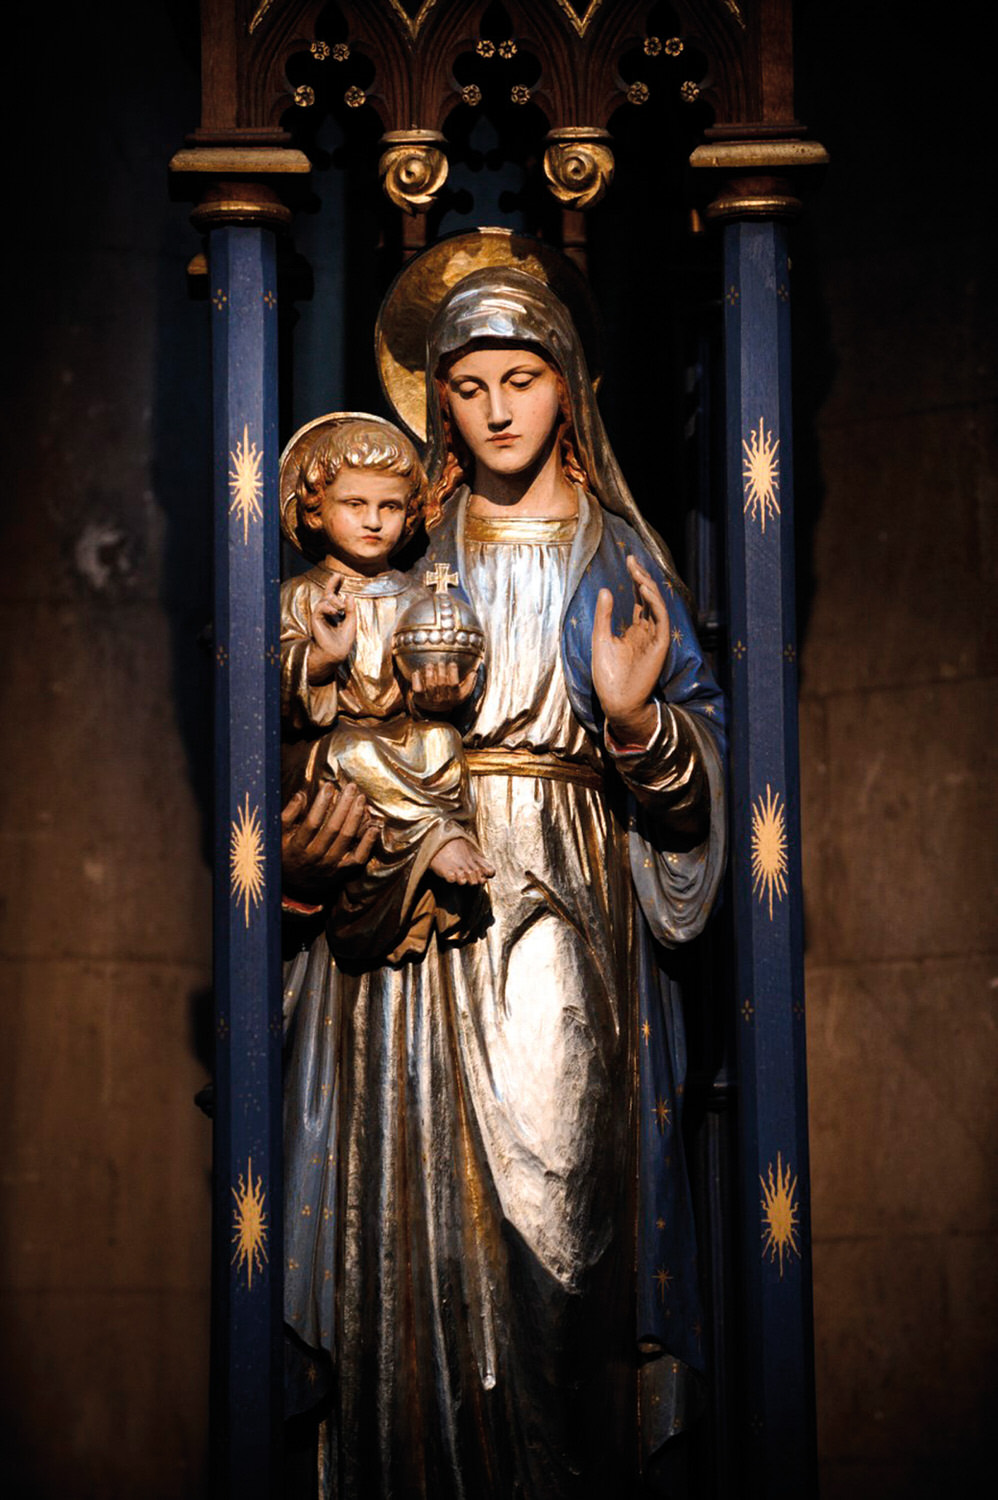 Statue of Blessed Virgin Mary and child